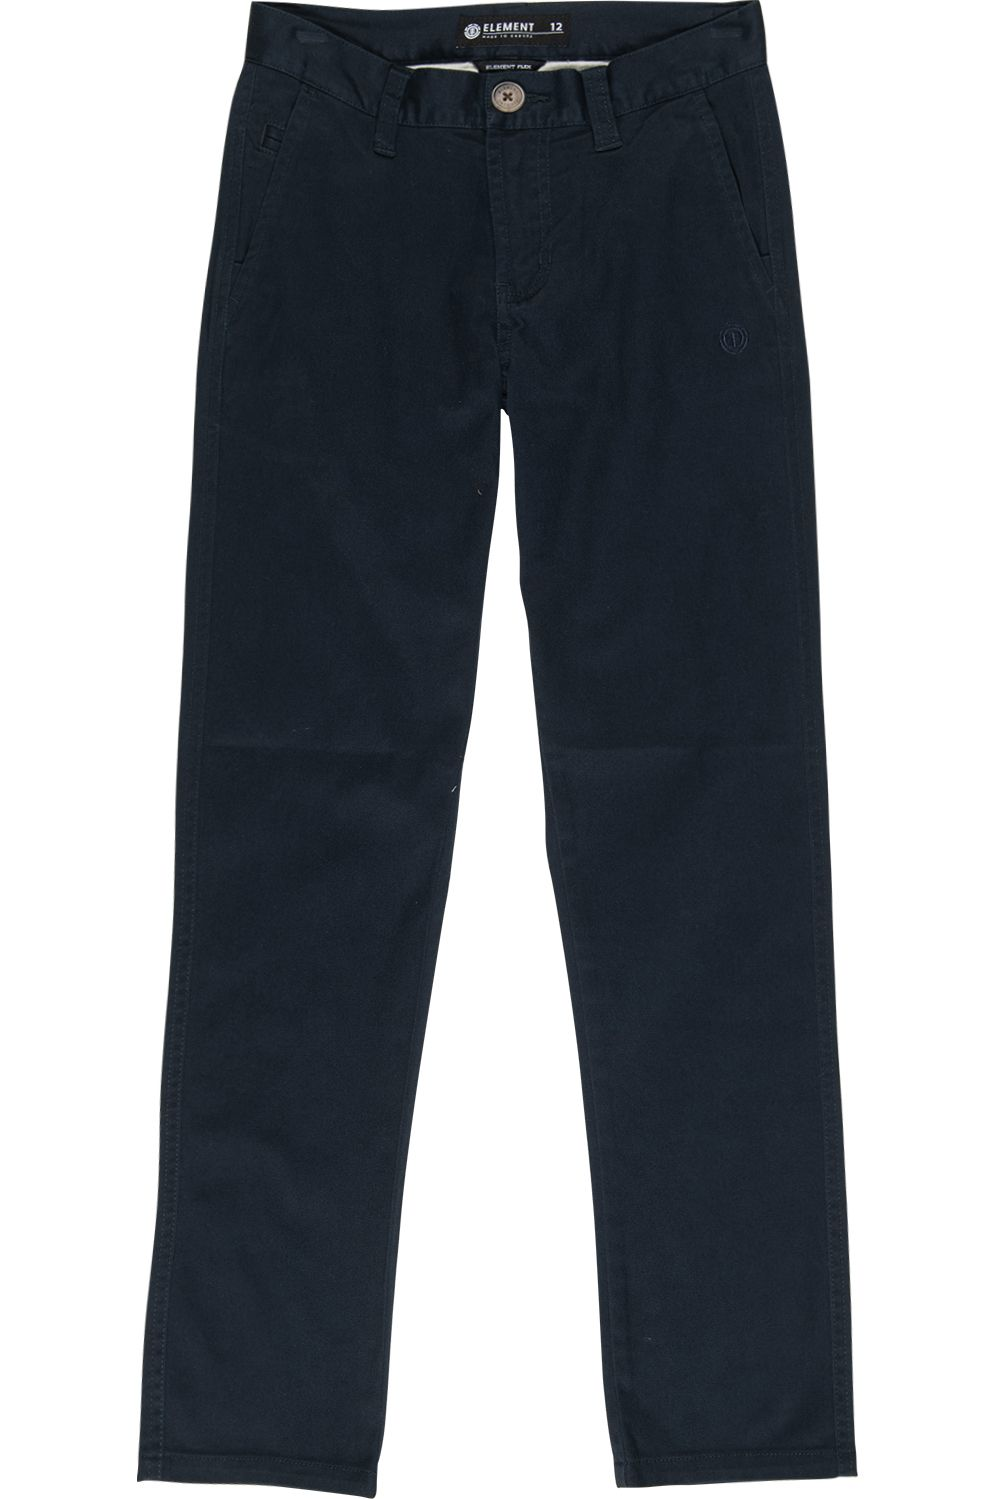 Element Pants HOWLAND CLASSIC CHINO Eclipse Navy